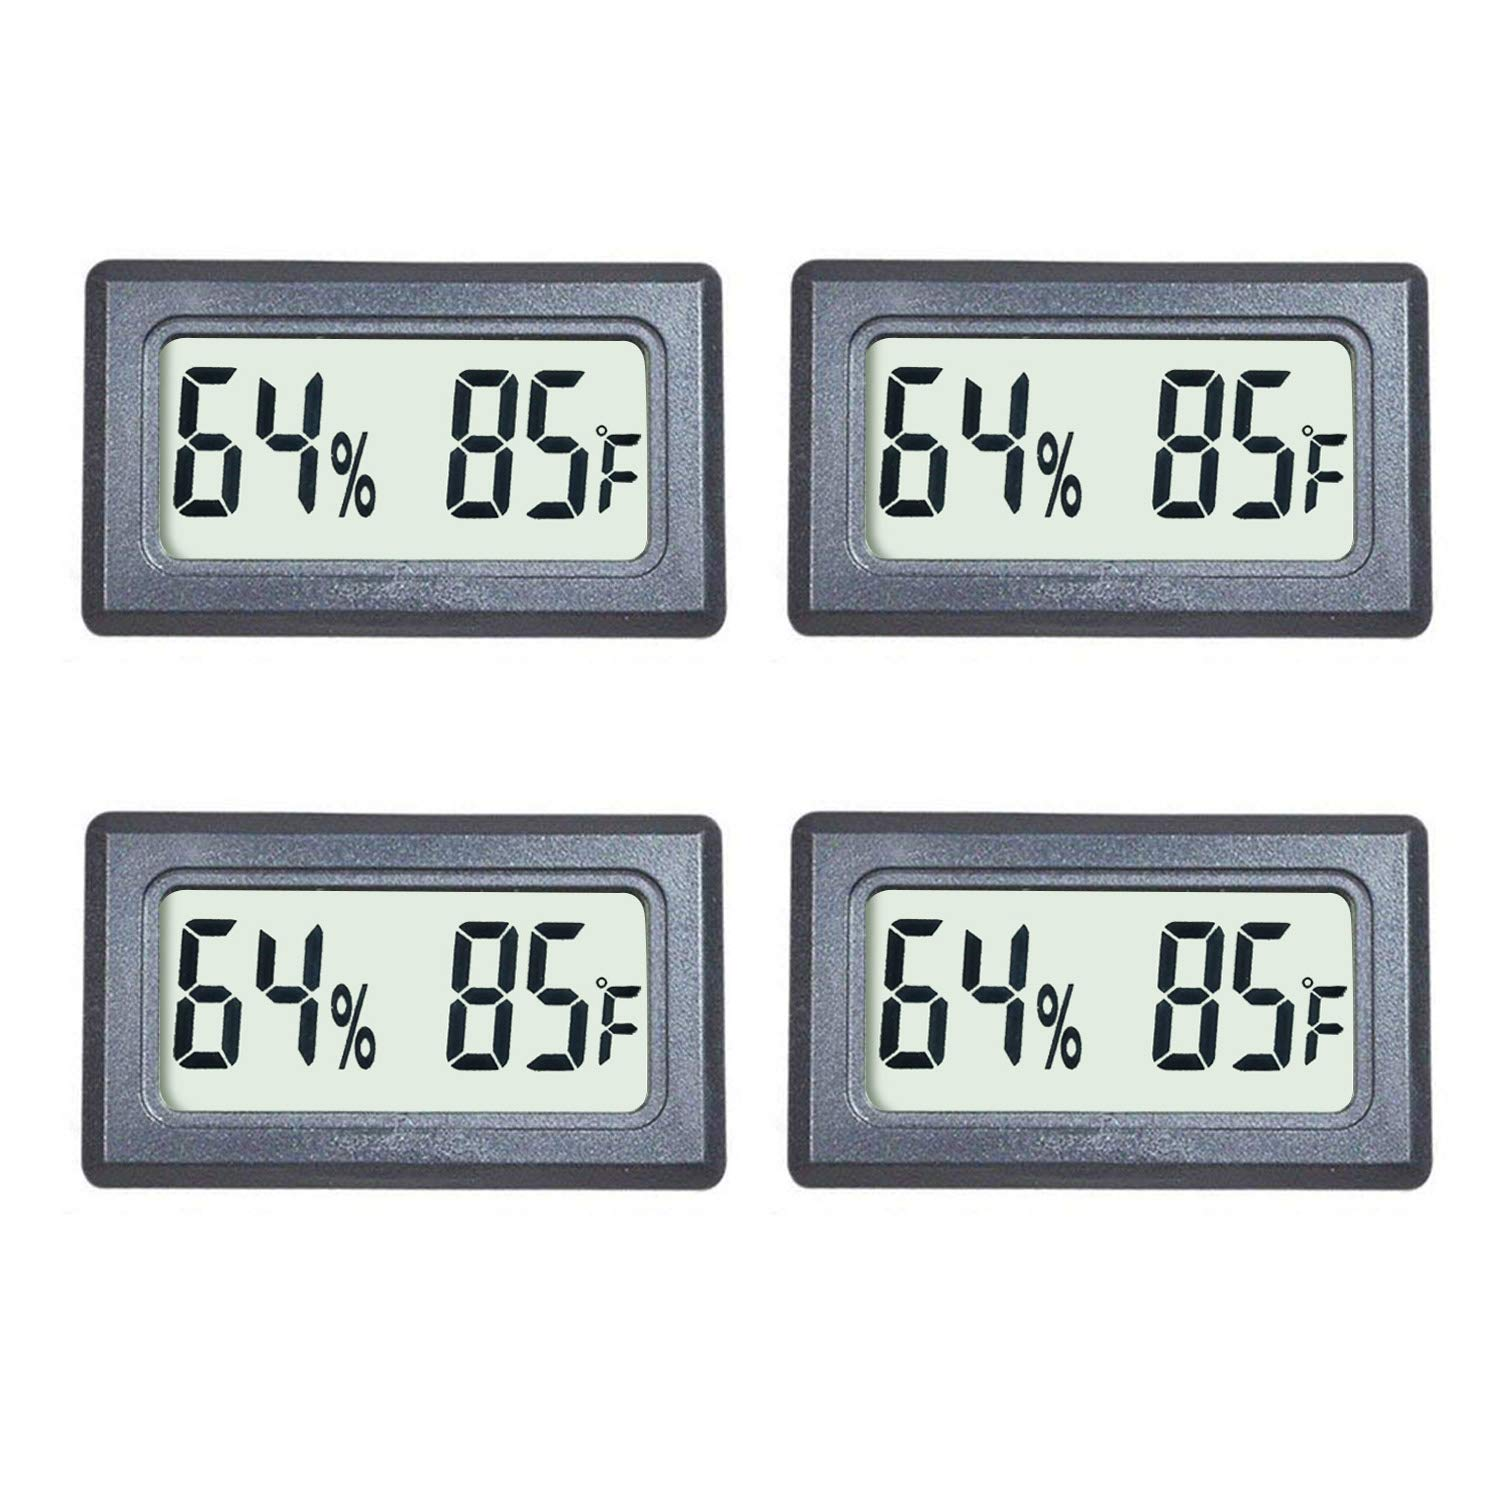 Veanic 4-Pack Mini Digital Thermometer Hygrometer Meters Gauge Indoor Large Number Display Temperature Fahrenheit (℉) Humidity for Home Office Humidors Jars Incubators Guitar Case by Veanic